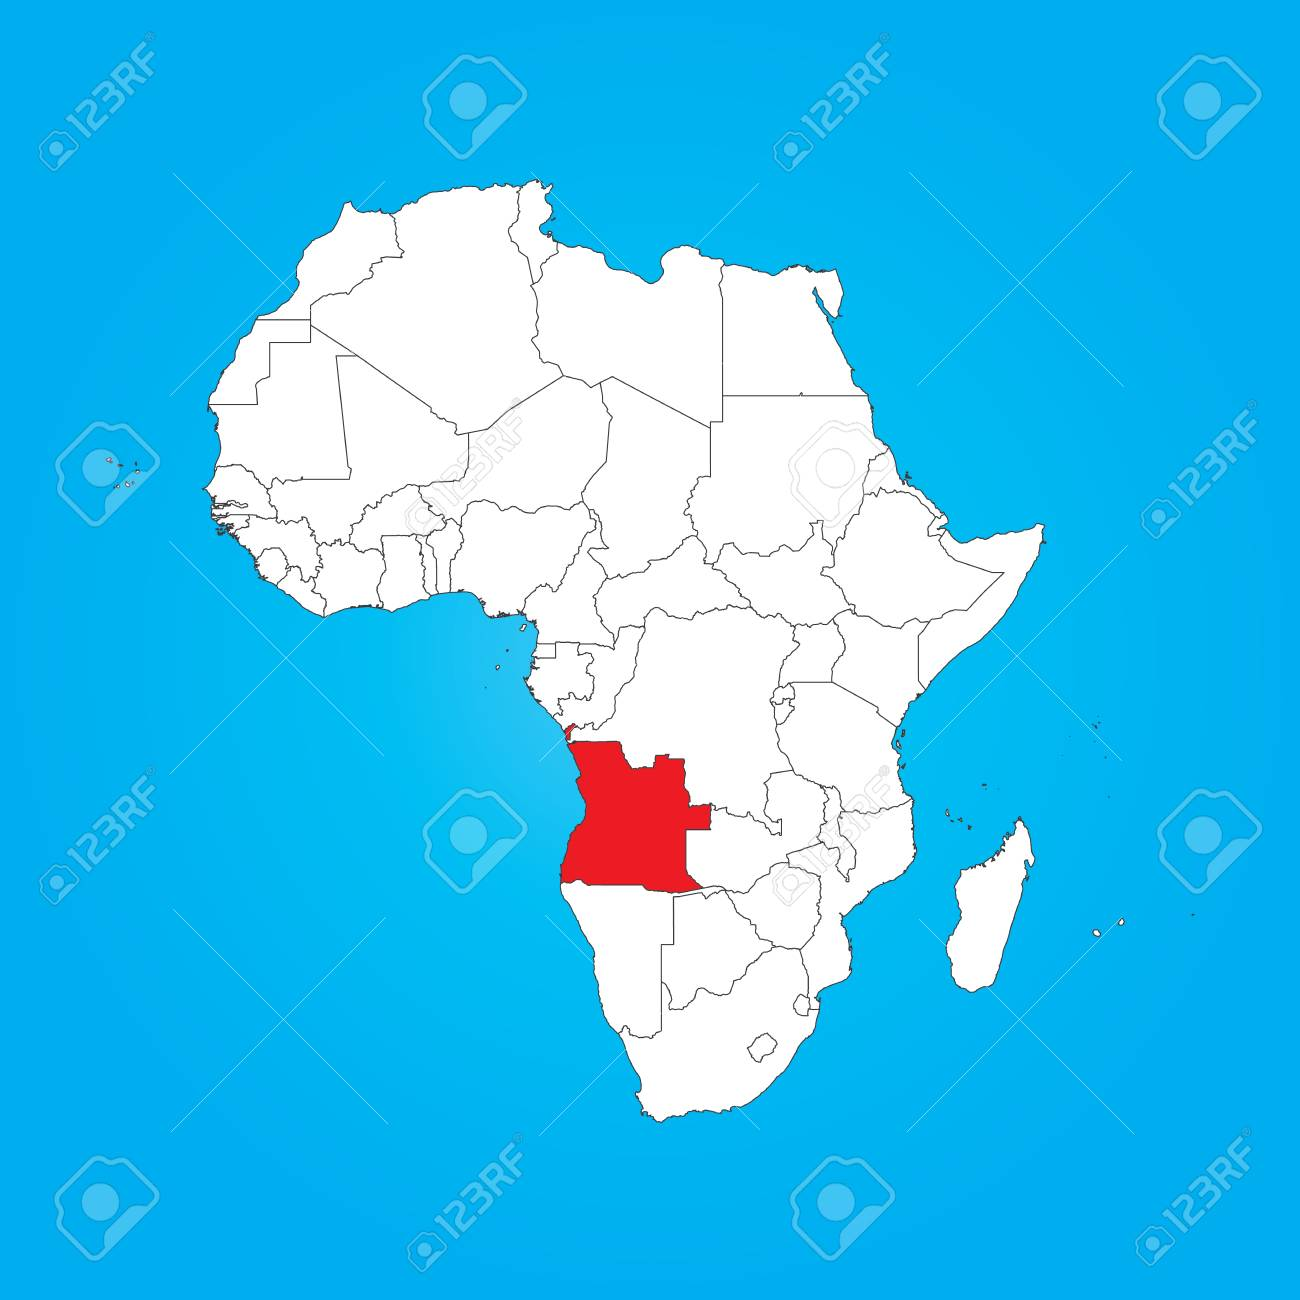 Angola On A Map Of Africa A Map Of Africa With A Selected Country Of Angola Stock Photo